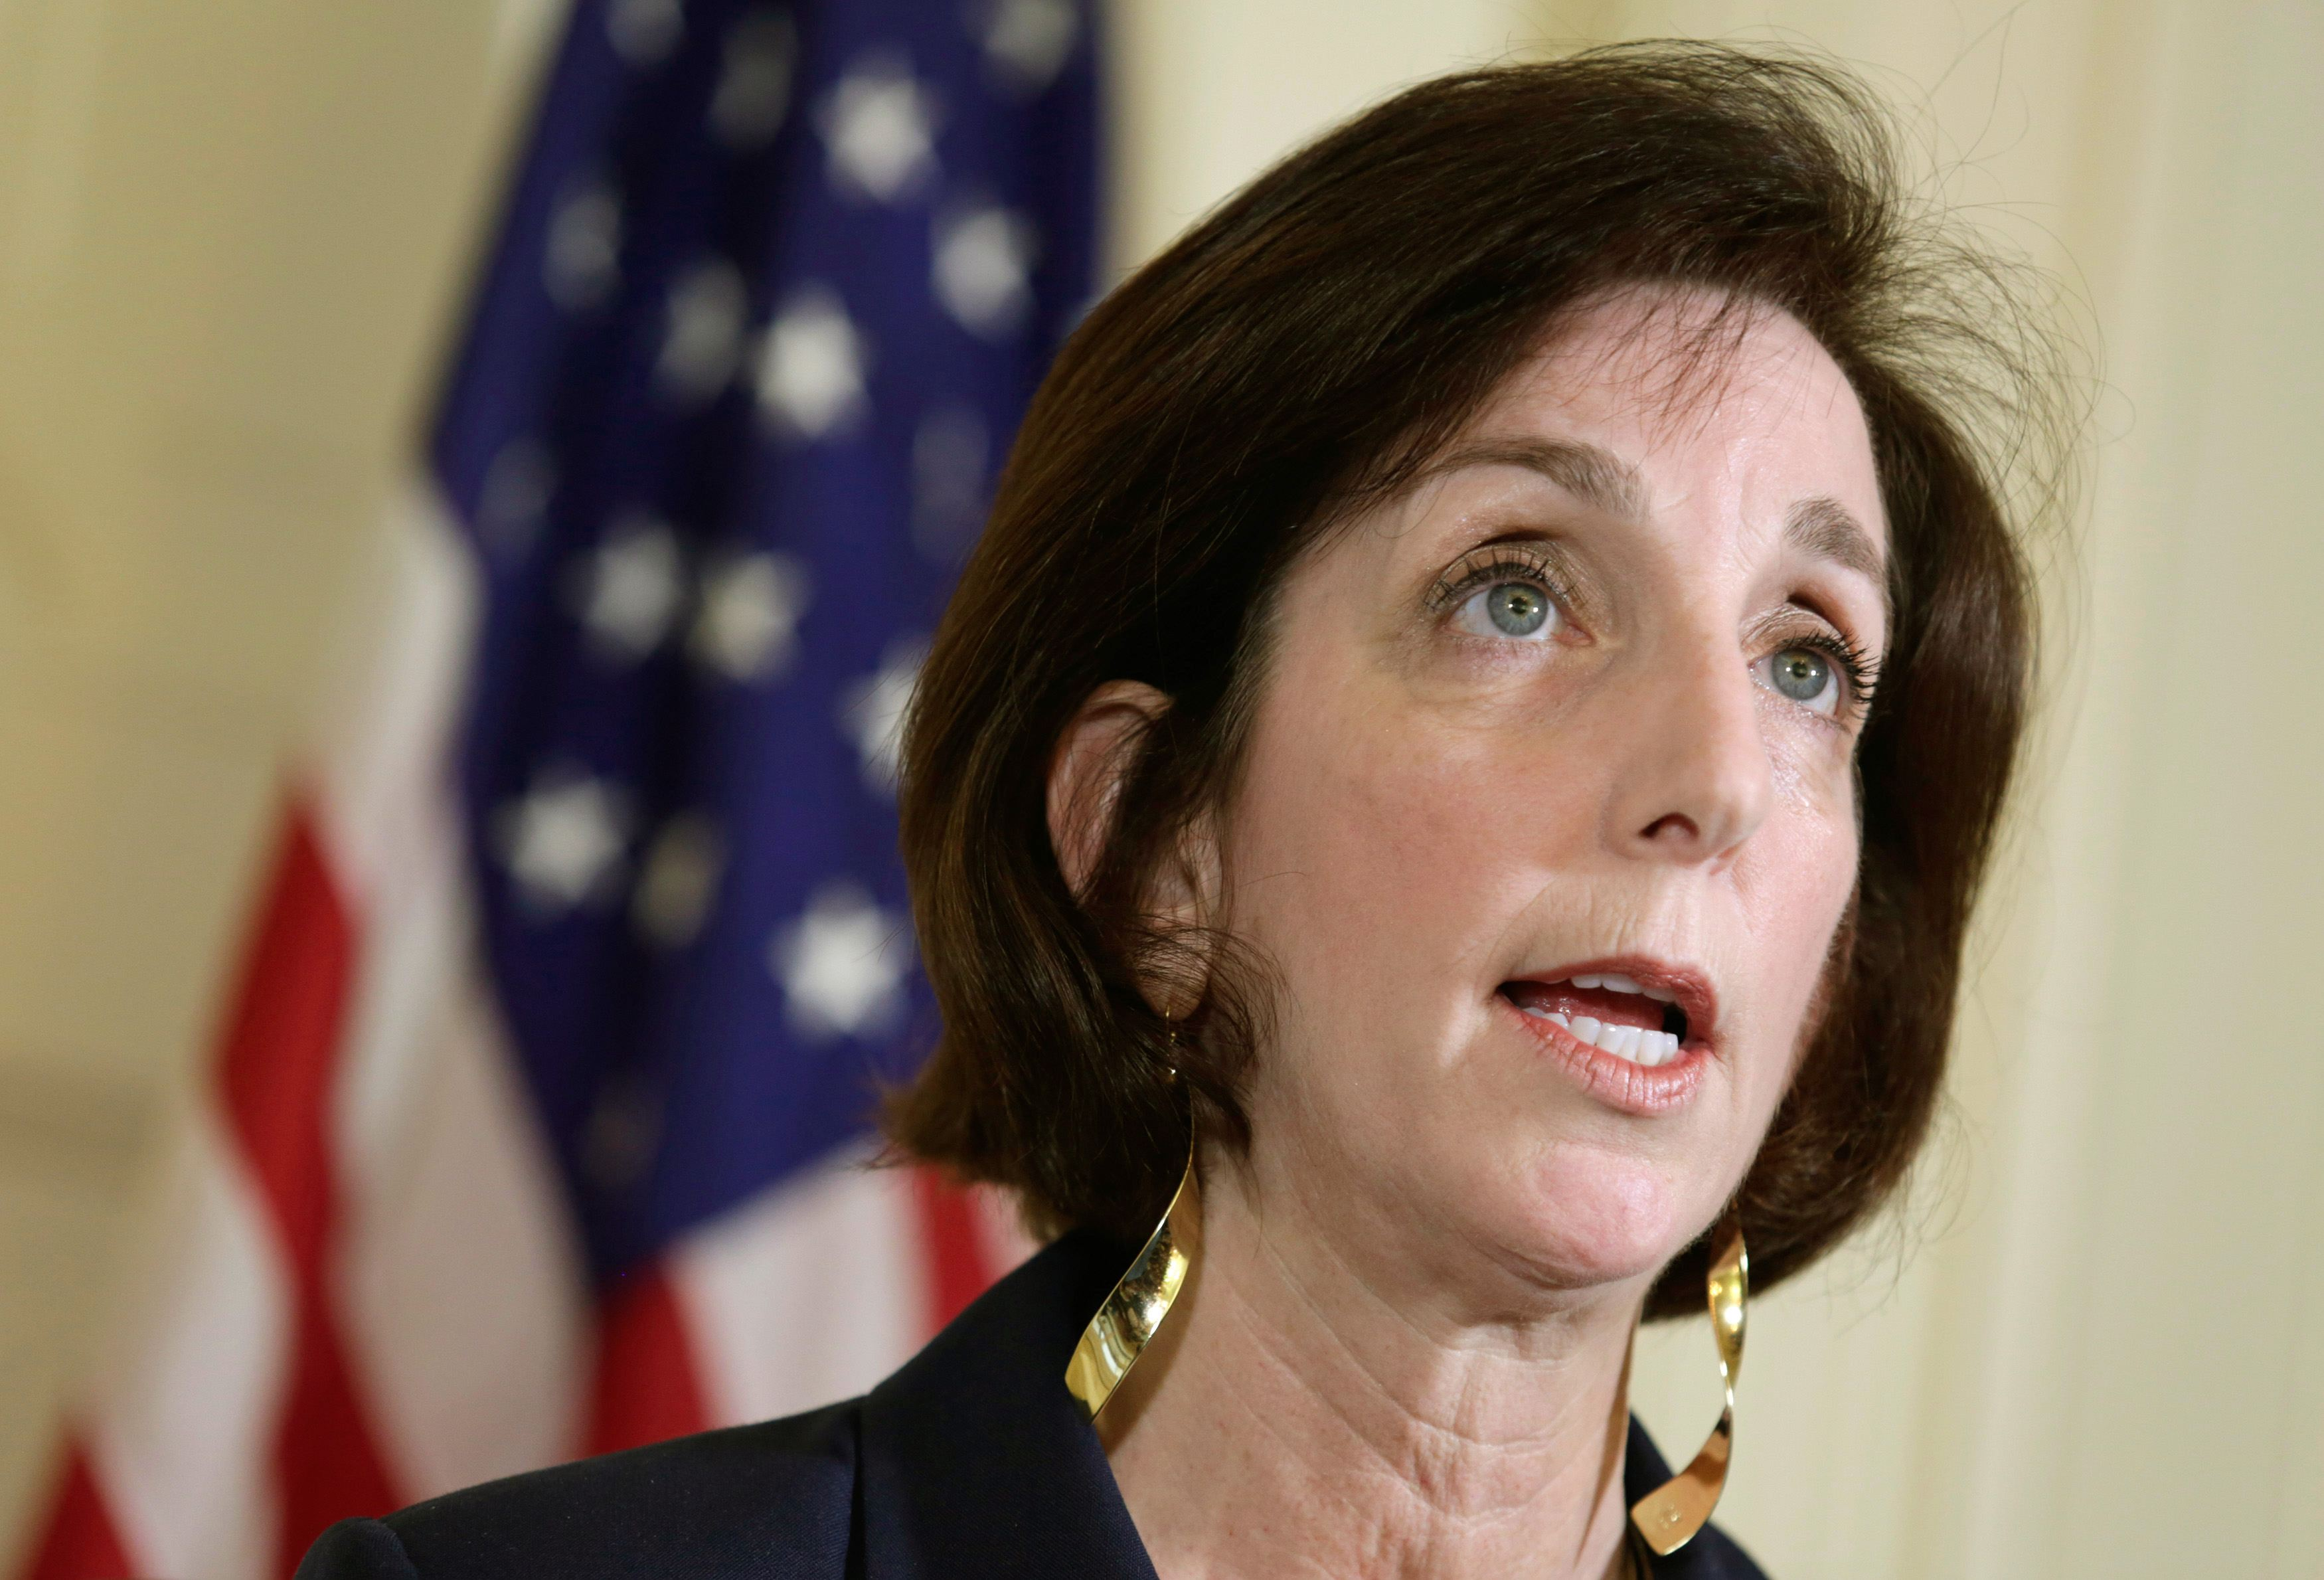 U.S. Assistant Secretary for Western Hemisphere Affairs Roberta Jacobson speaks during a conference in Havana in this file photo